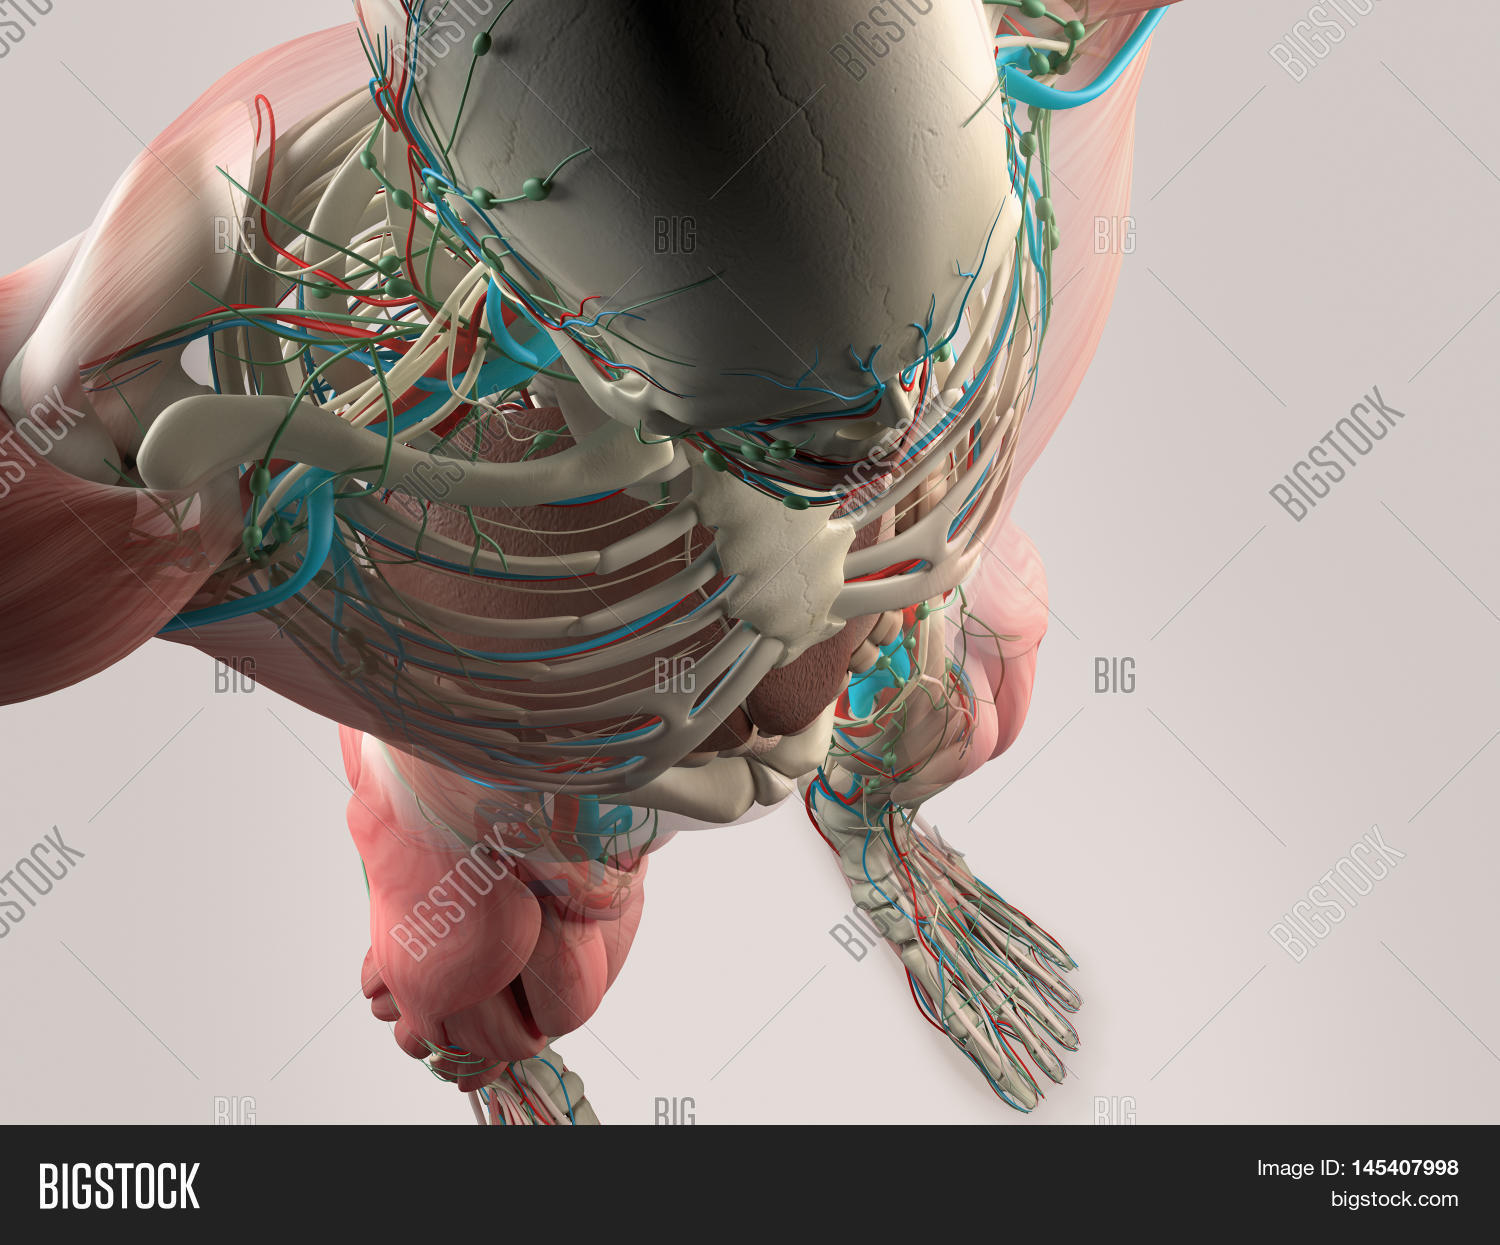 Human Anatomy Detail Image Photo Free Trial Bigstock